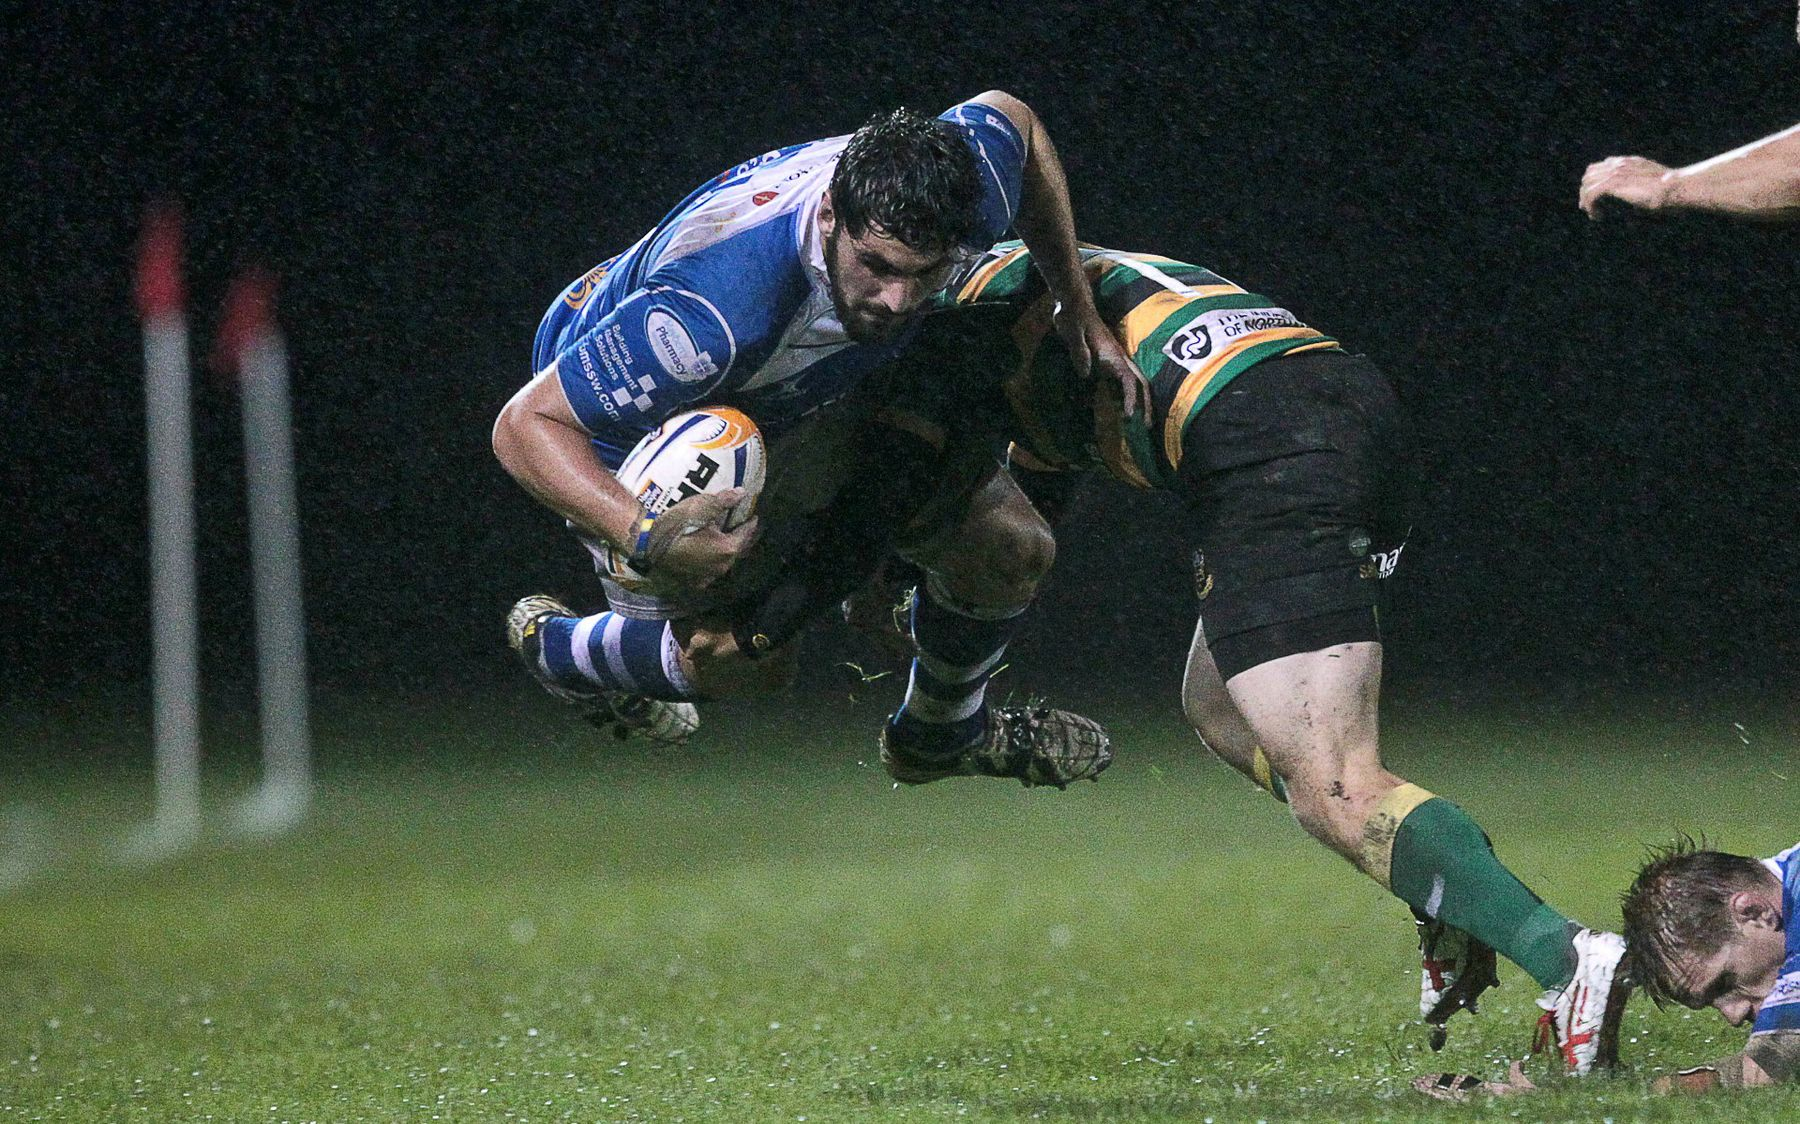 Dragons too hot for Saints